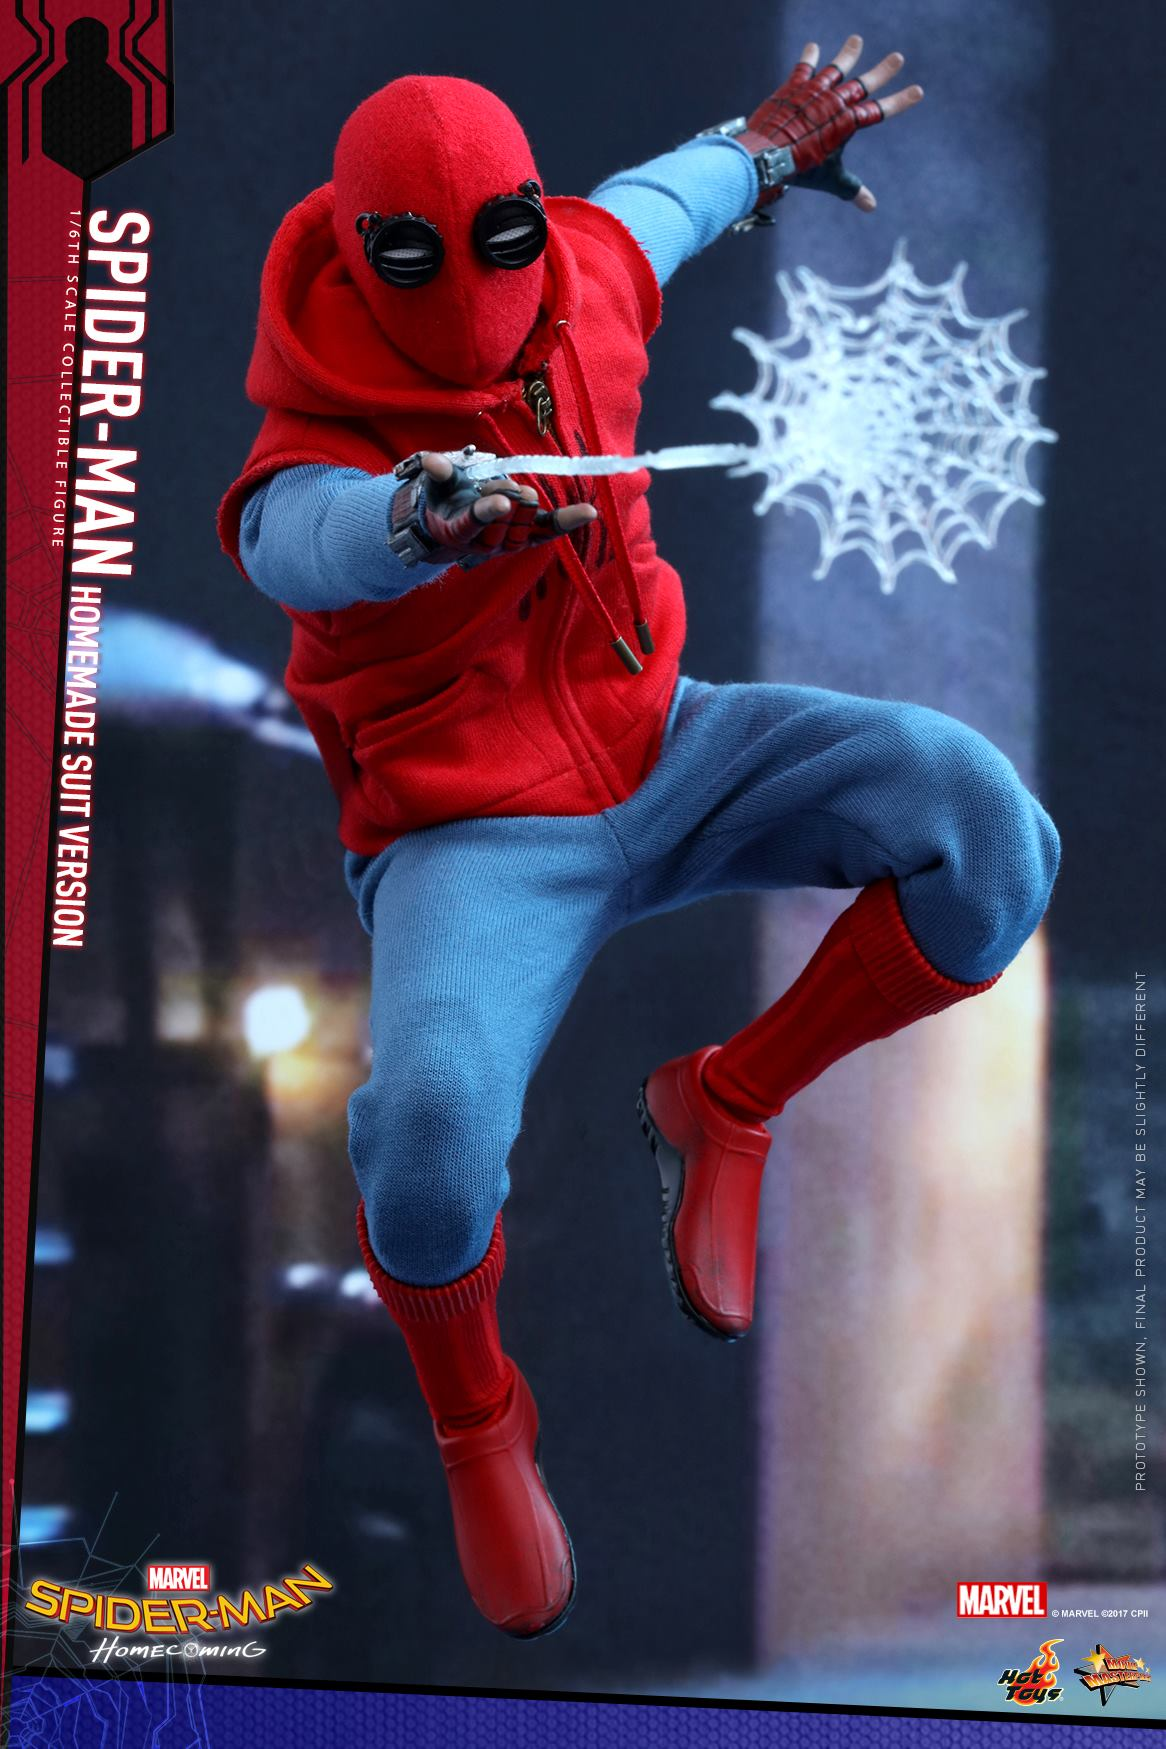 Single Sale Super Heroes Spiderman Homecoming Homemade Suit Spider